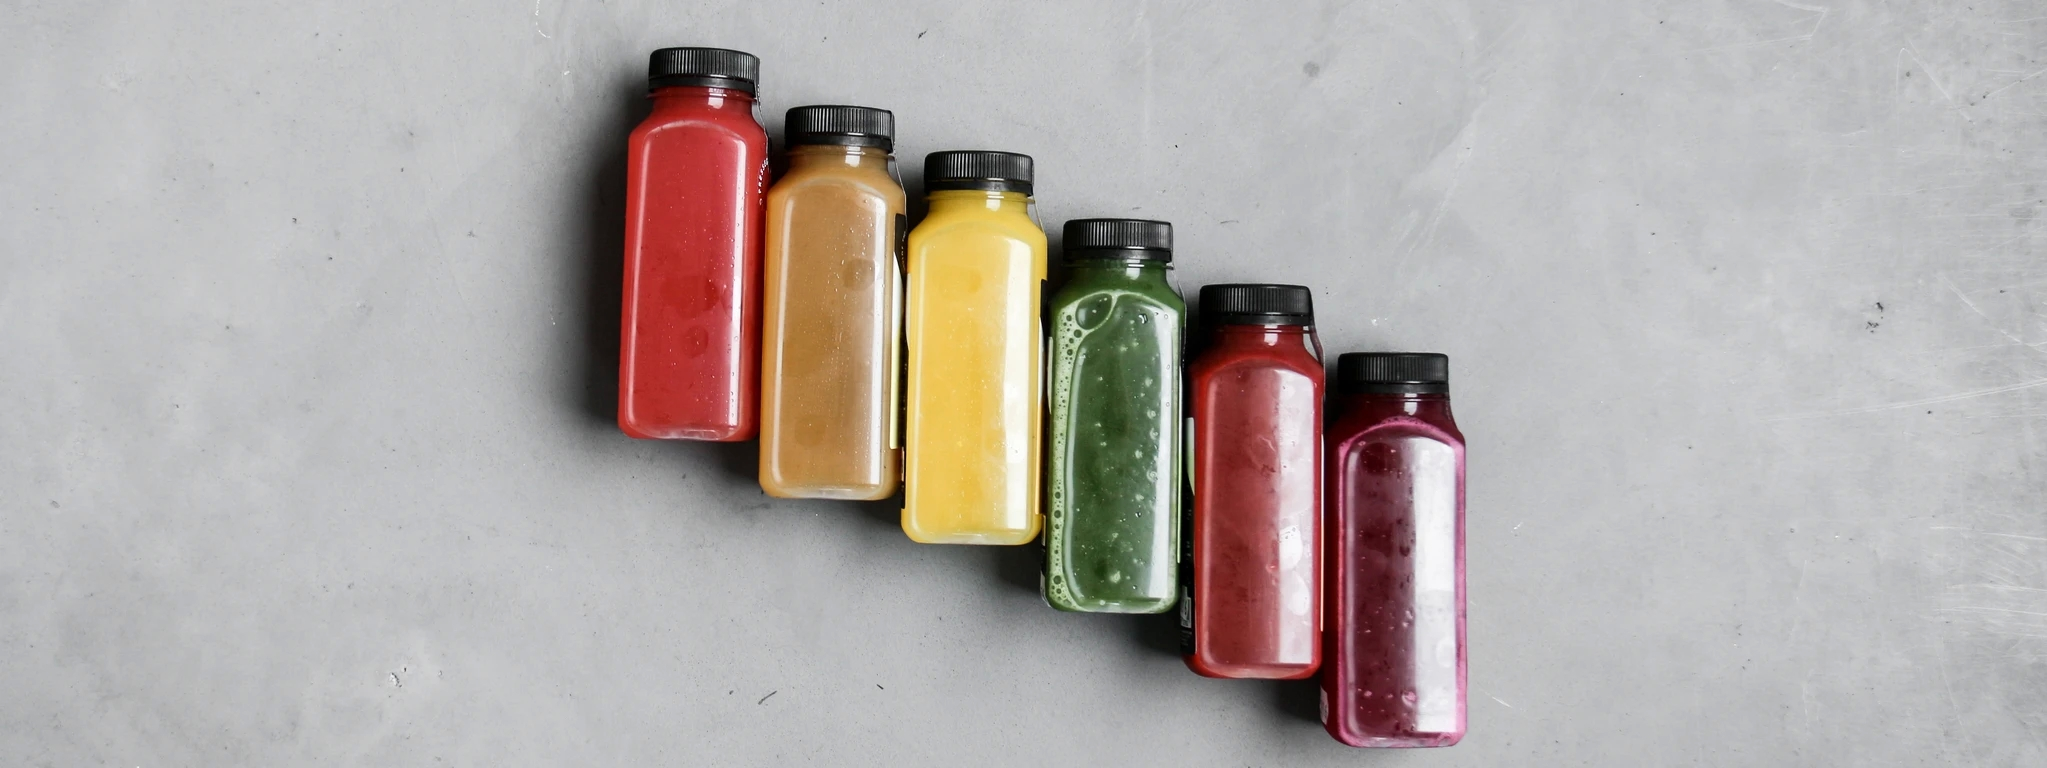 How To Deal With Body Toxins By Detoxification?